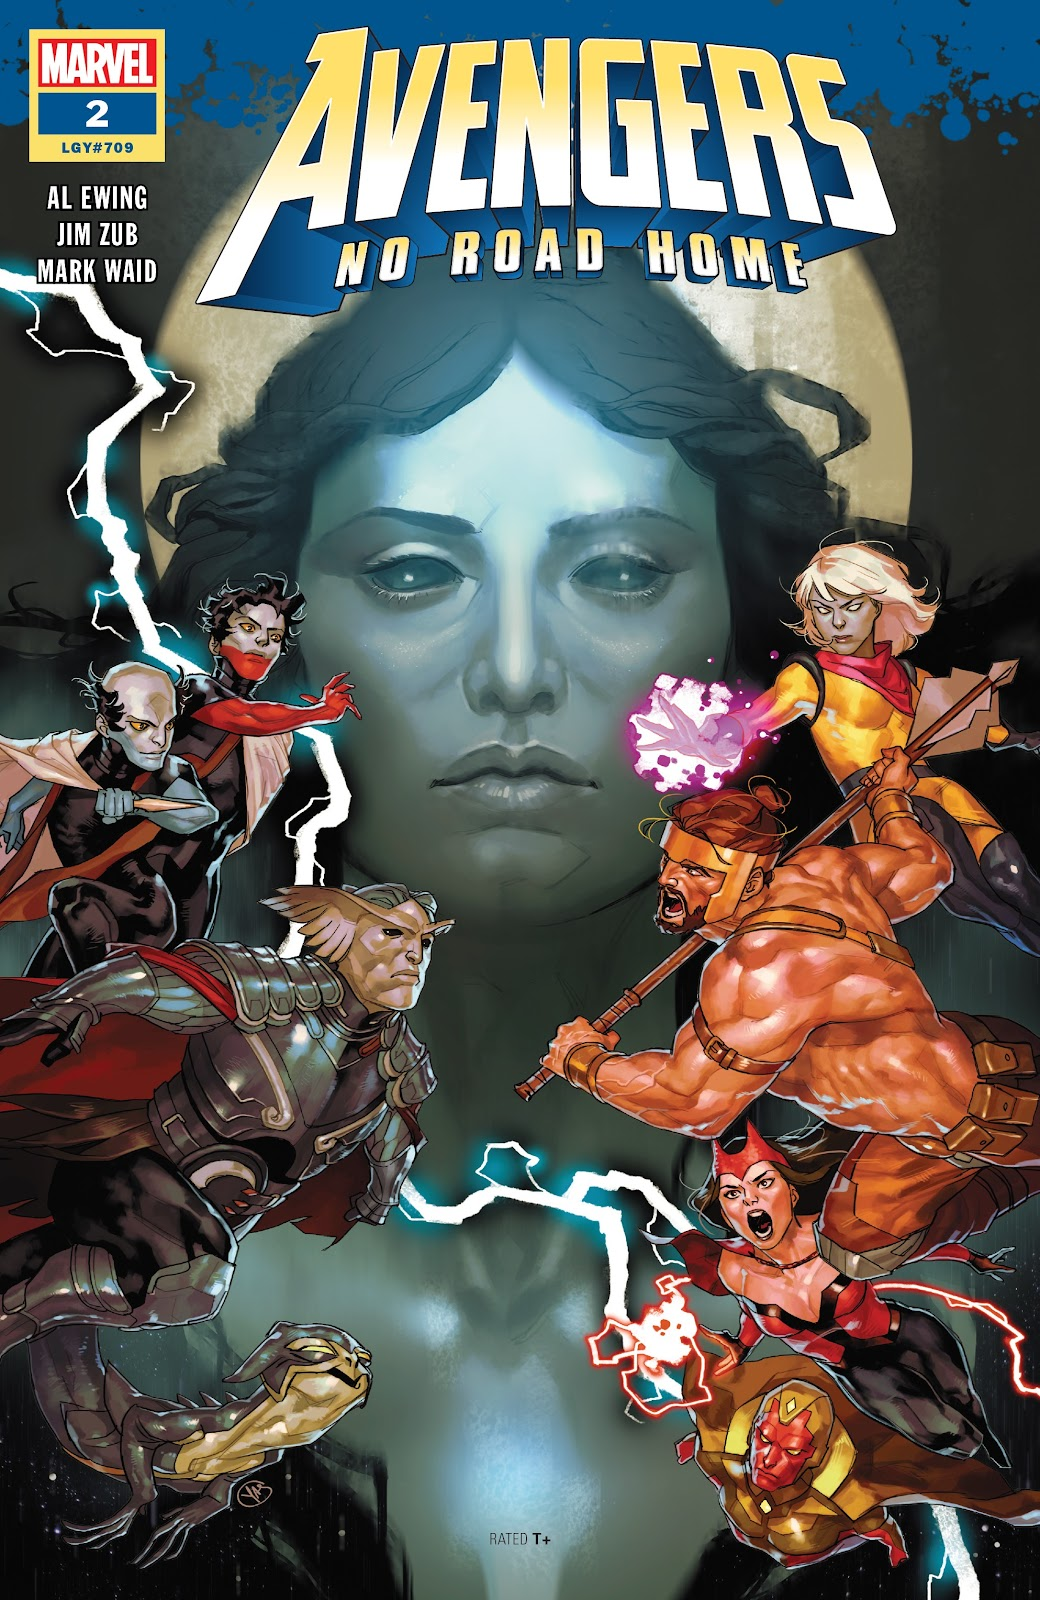 Read online Avengers No Road Home comic -  Issue #2 - 1